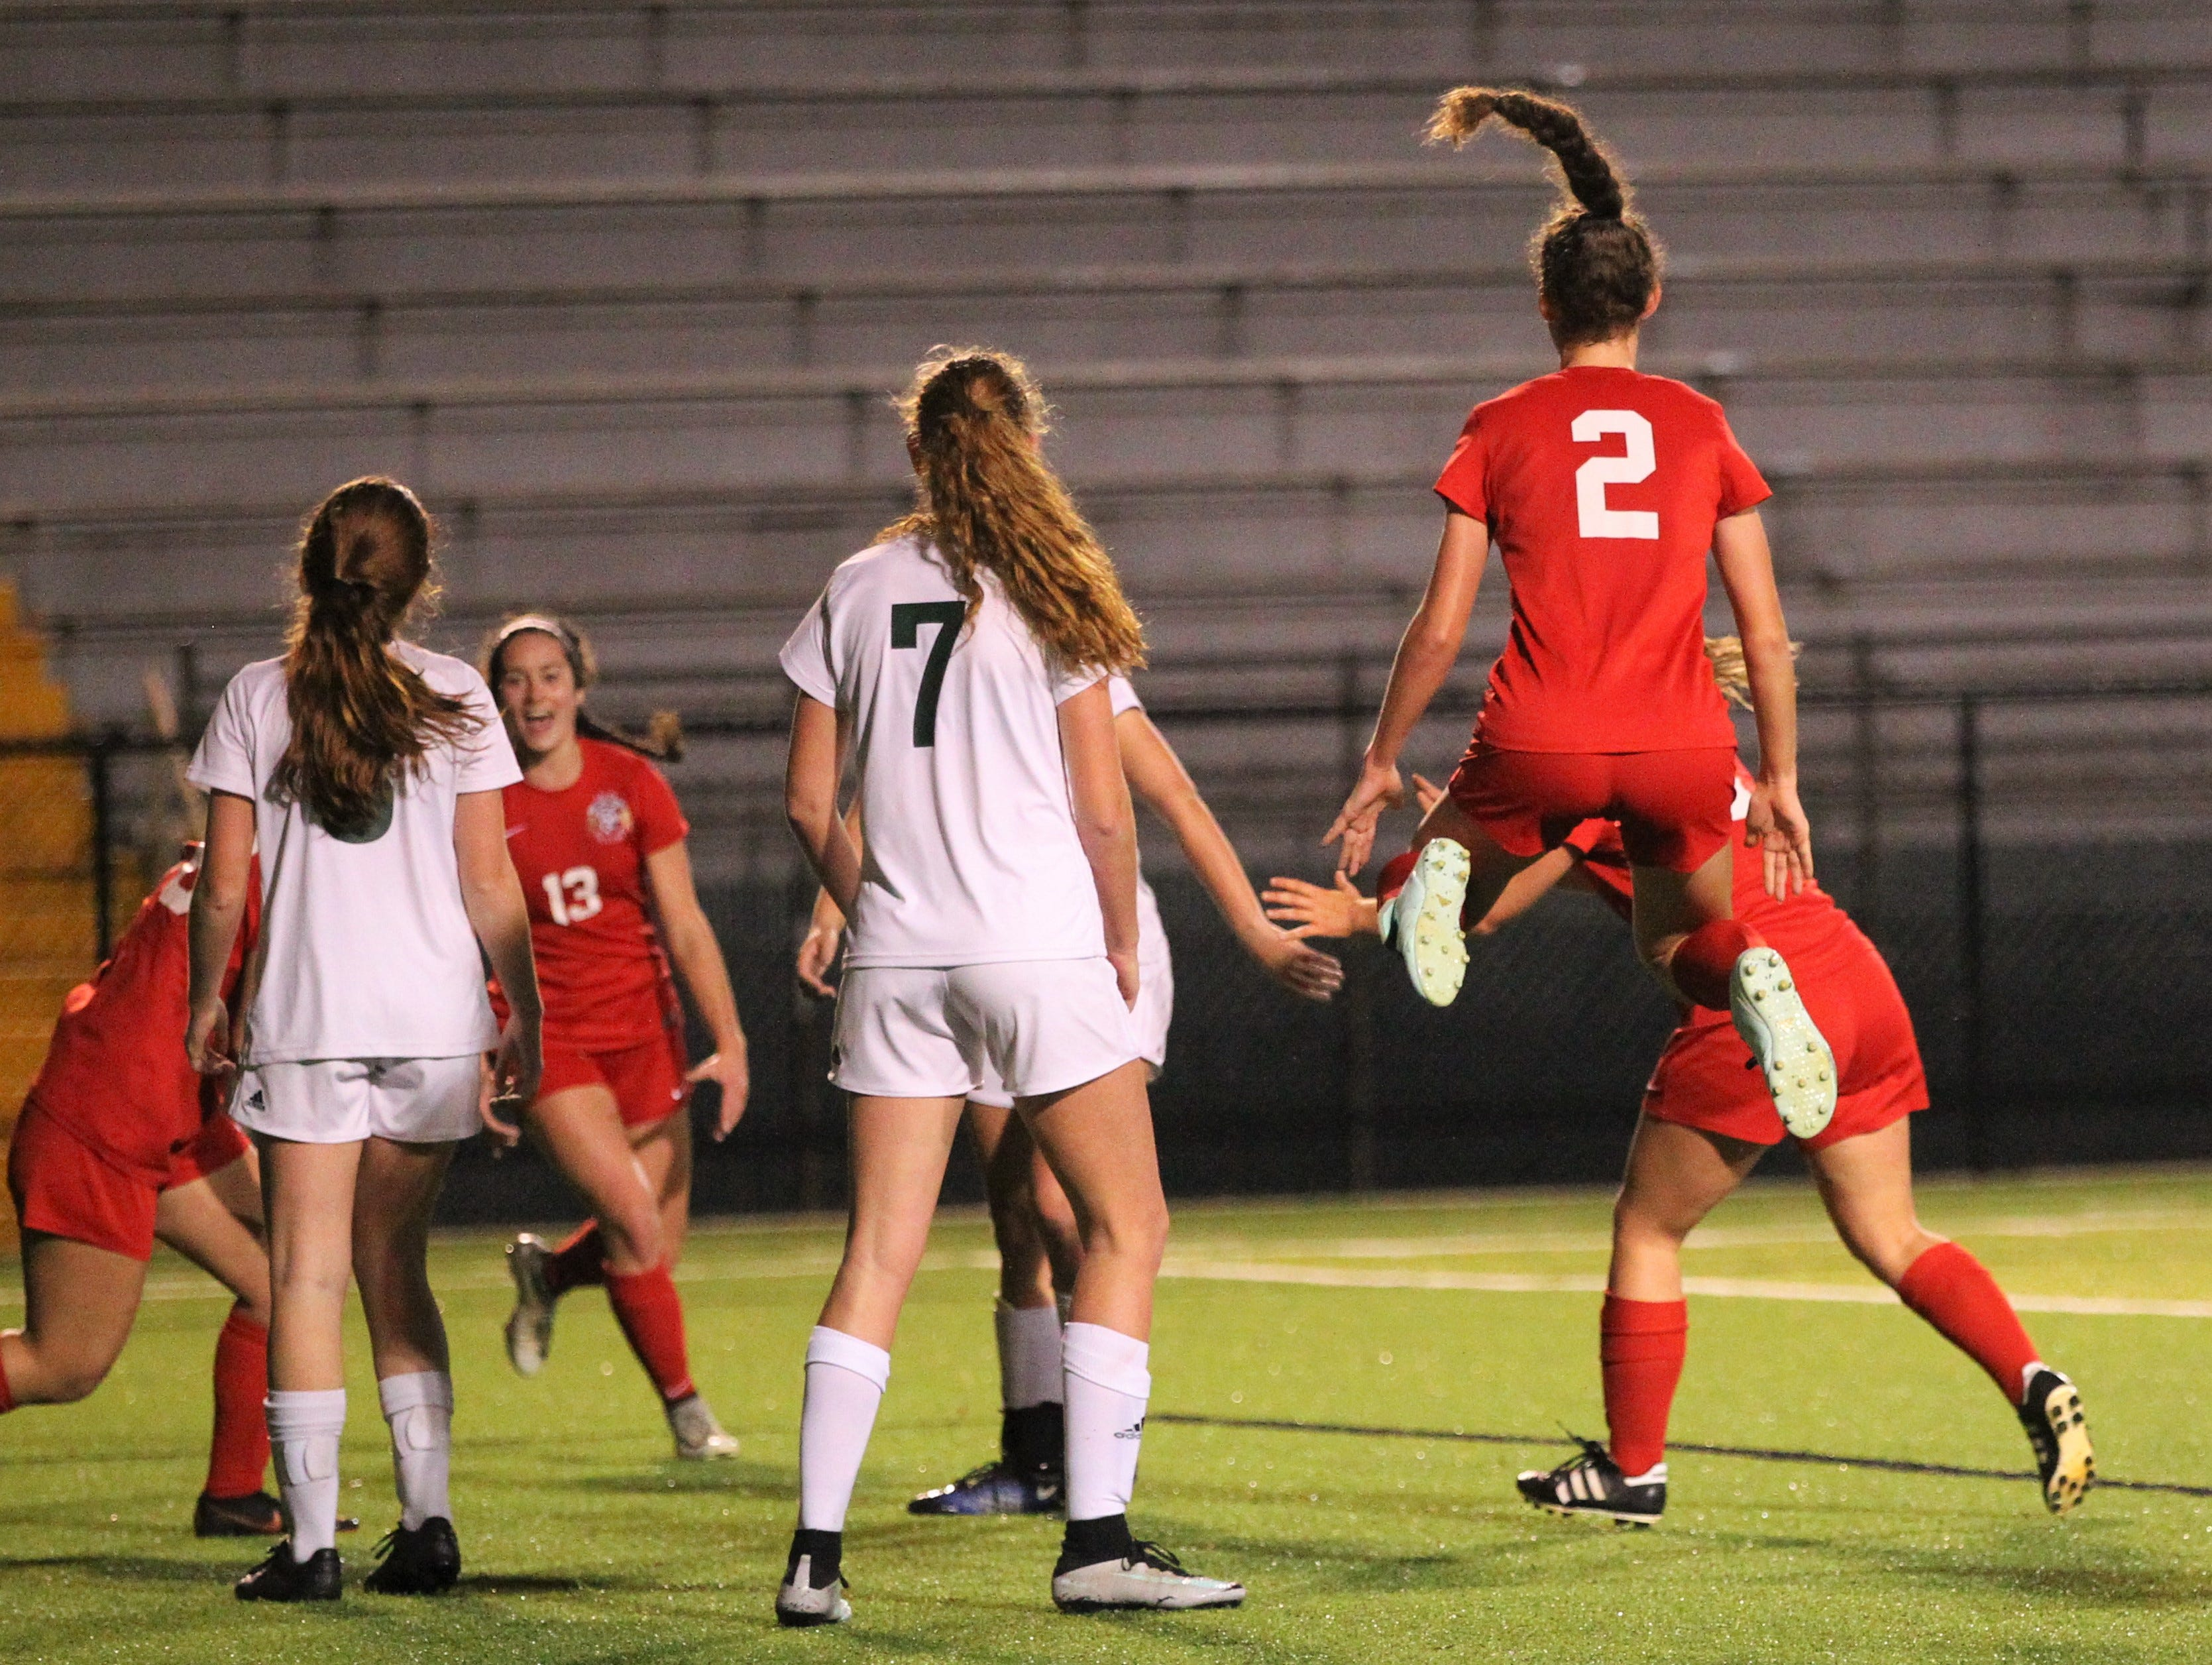 Leon's Melody Hughes reacts to Eden Kirn's header goal off a corner kick that proved the game-winner as Leon's girls soccer team beat Lincoln 2-1 in the District 2-4A championship at Gene Cox Stadium on Feb. 1, 2019.